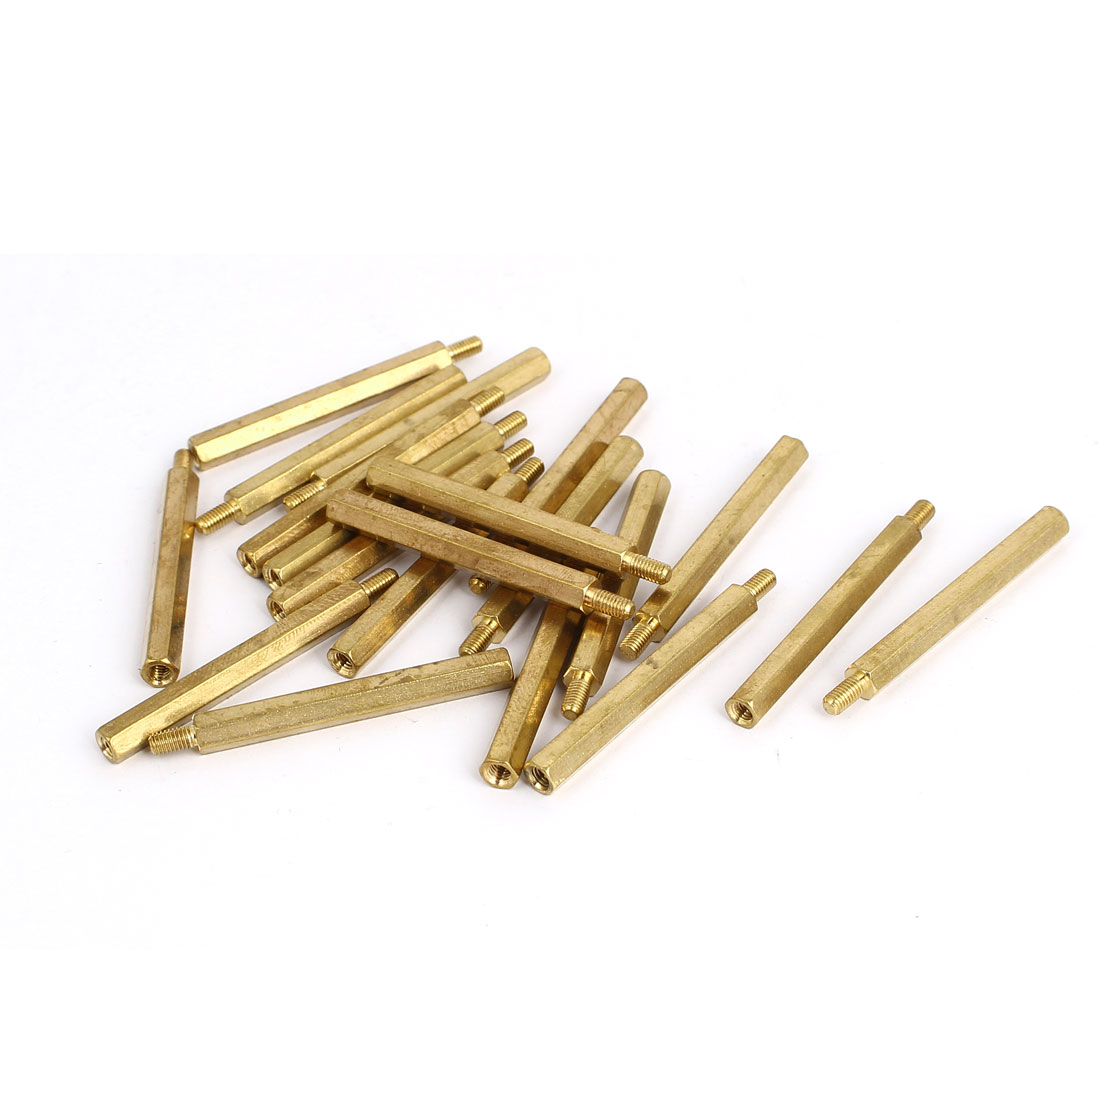 M3 Male to Female Thread Insulated Brass Standoff Hexagonal Spacer 40+6mm Long 20pcs